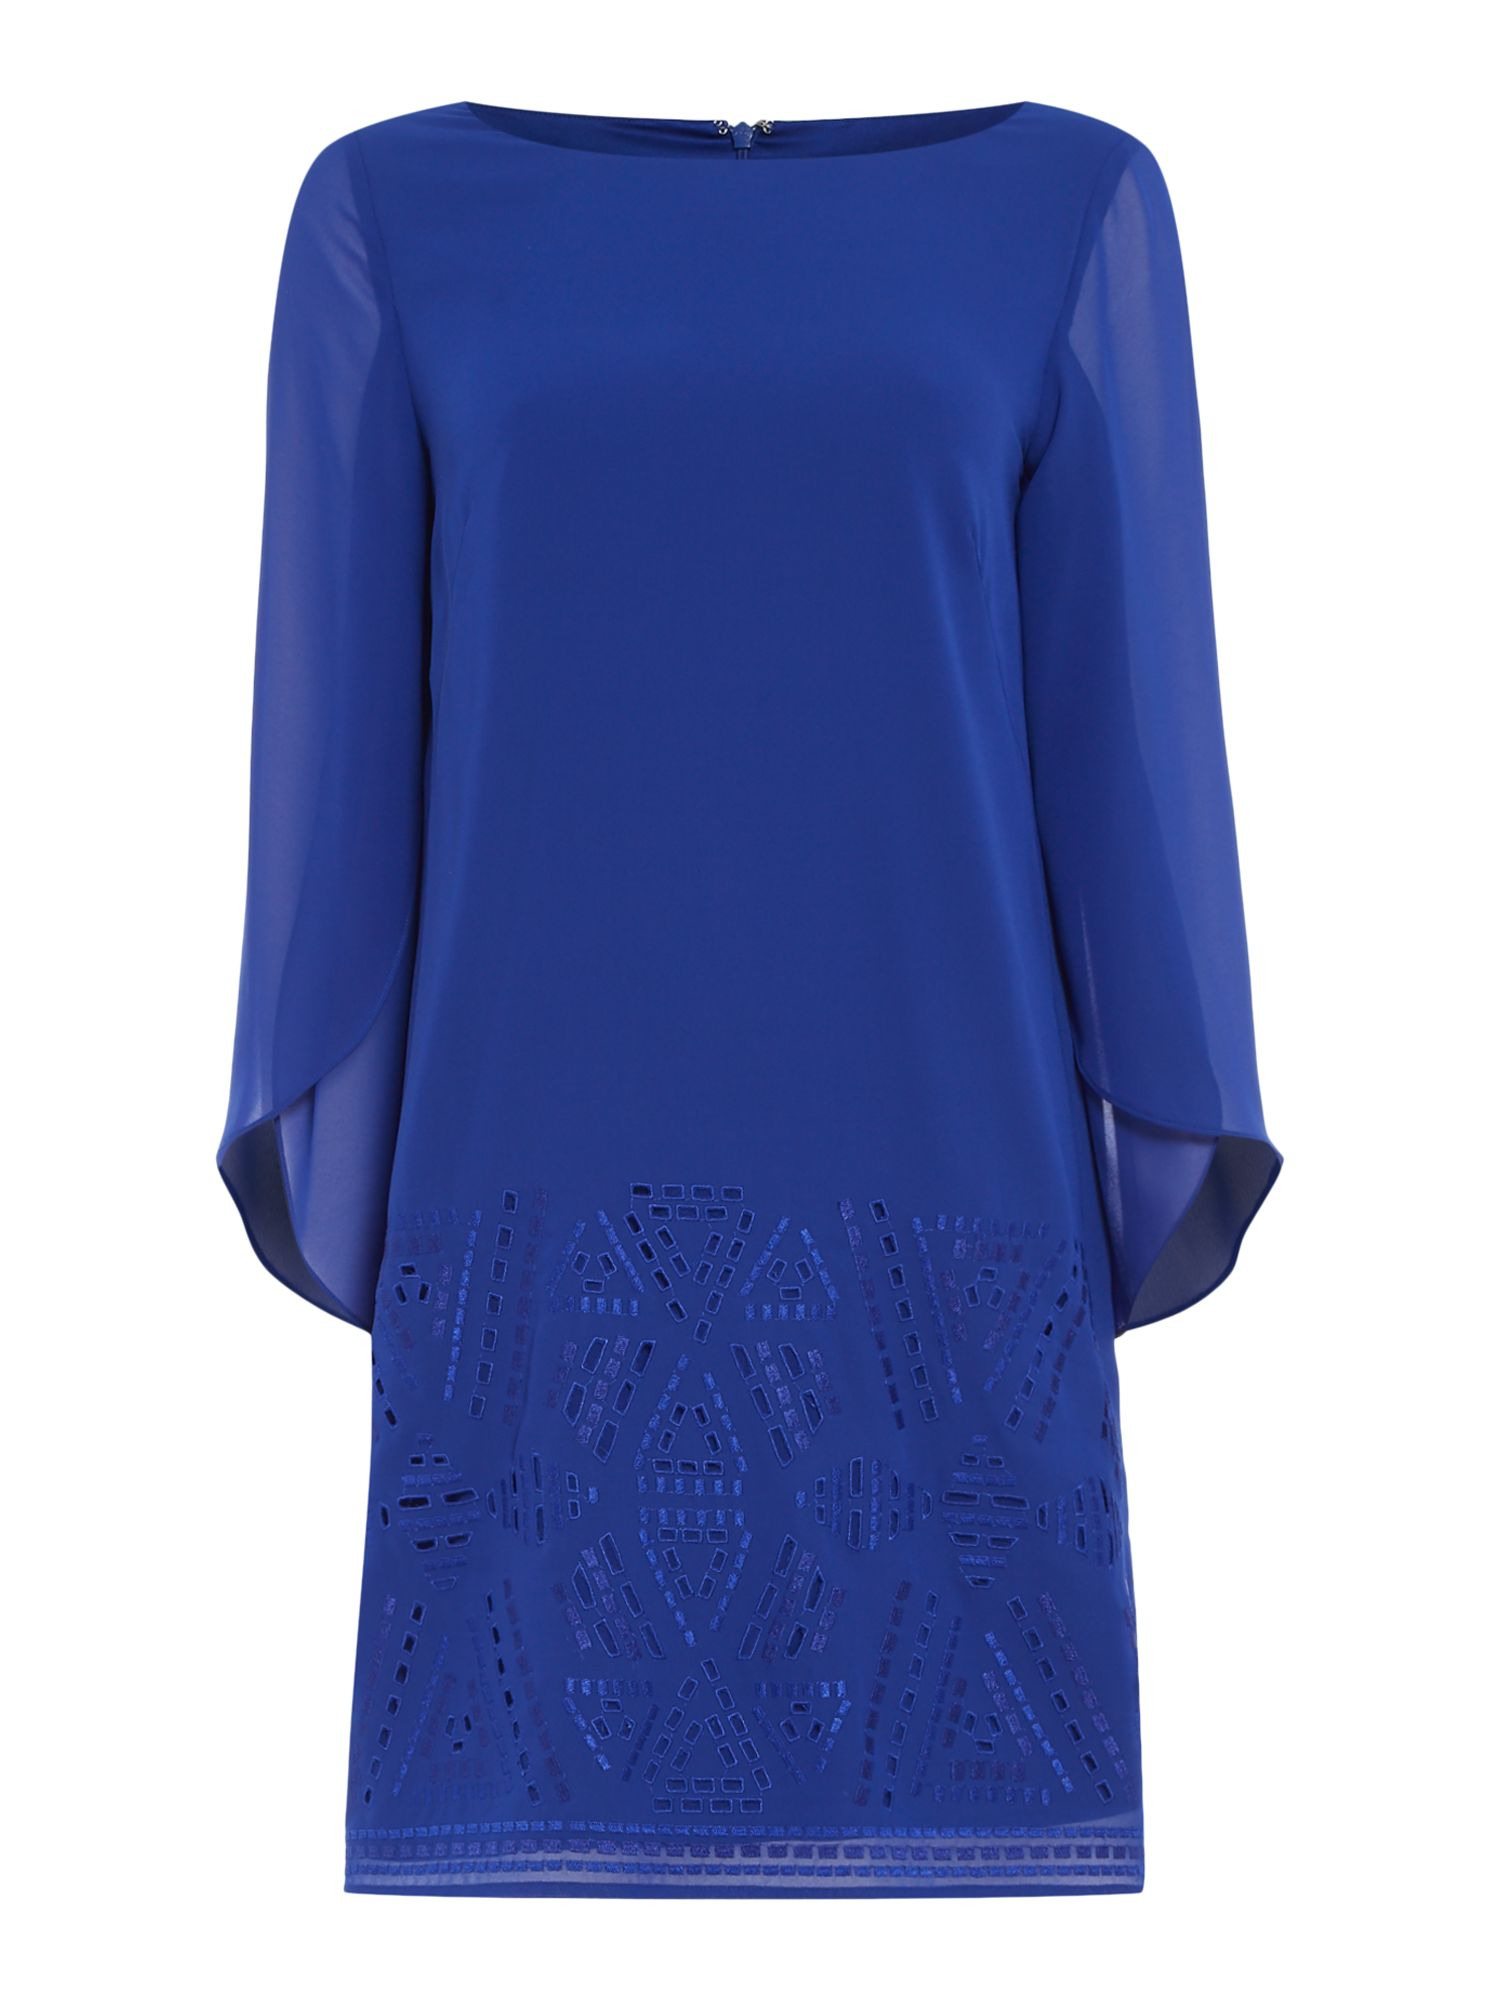 Tahari ASL Blue Chiffon Dress, Blue